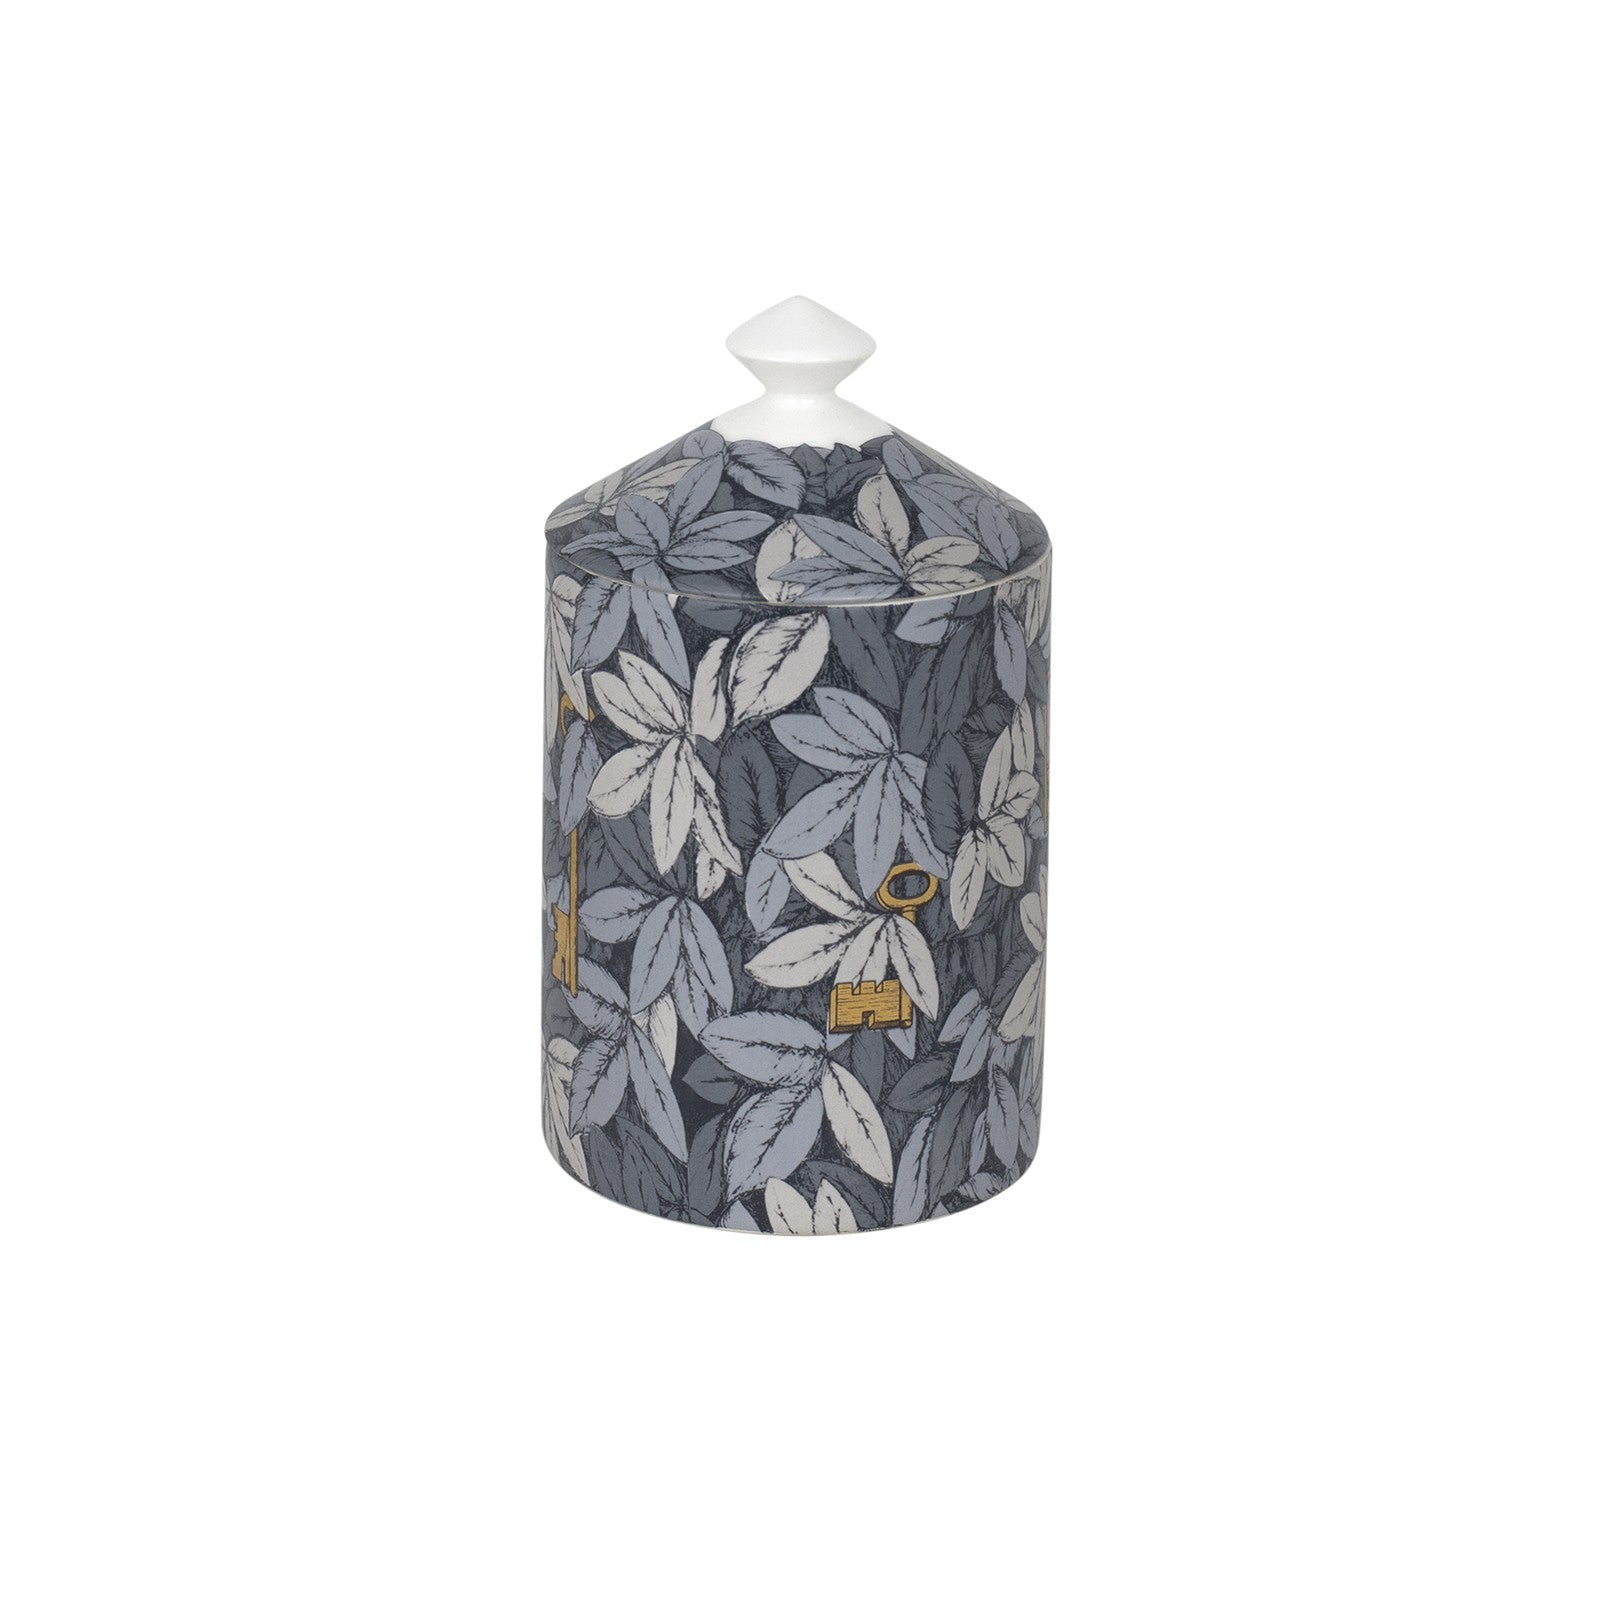 Fornasetti candle Foglie Gold keys 300g